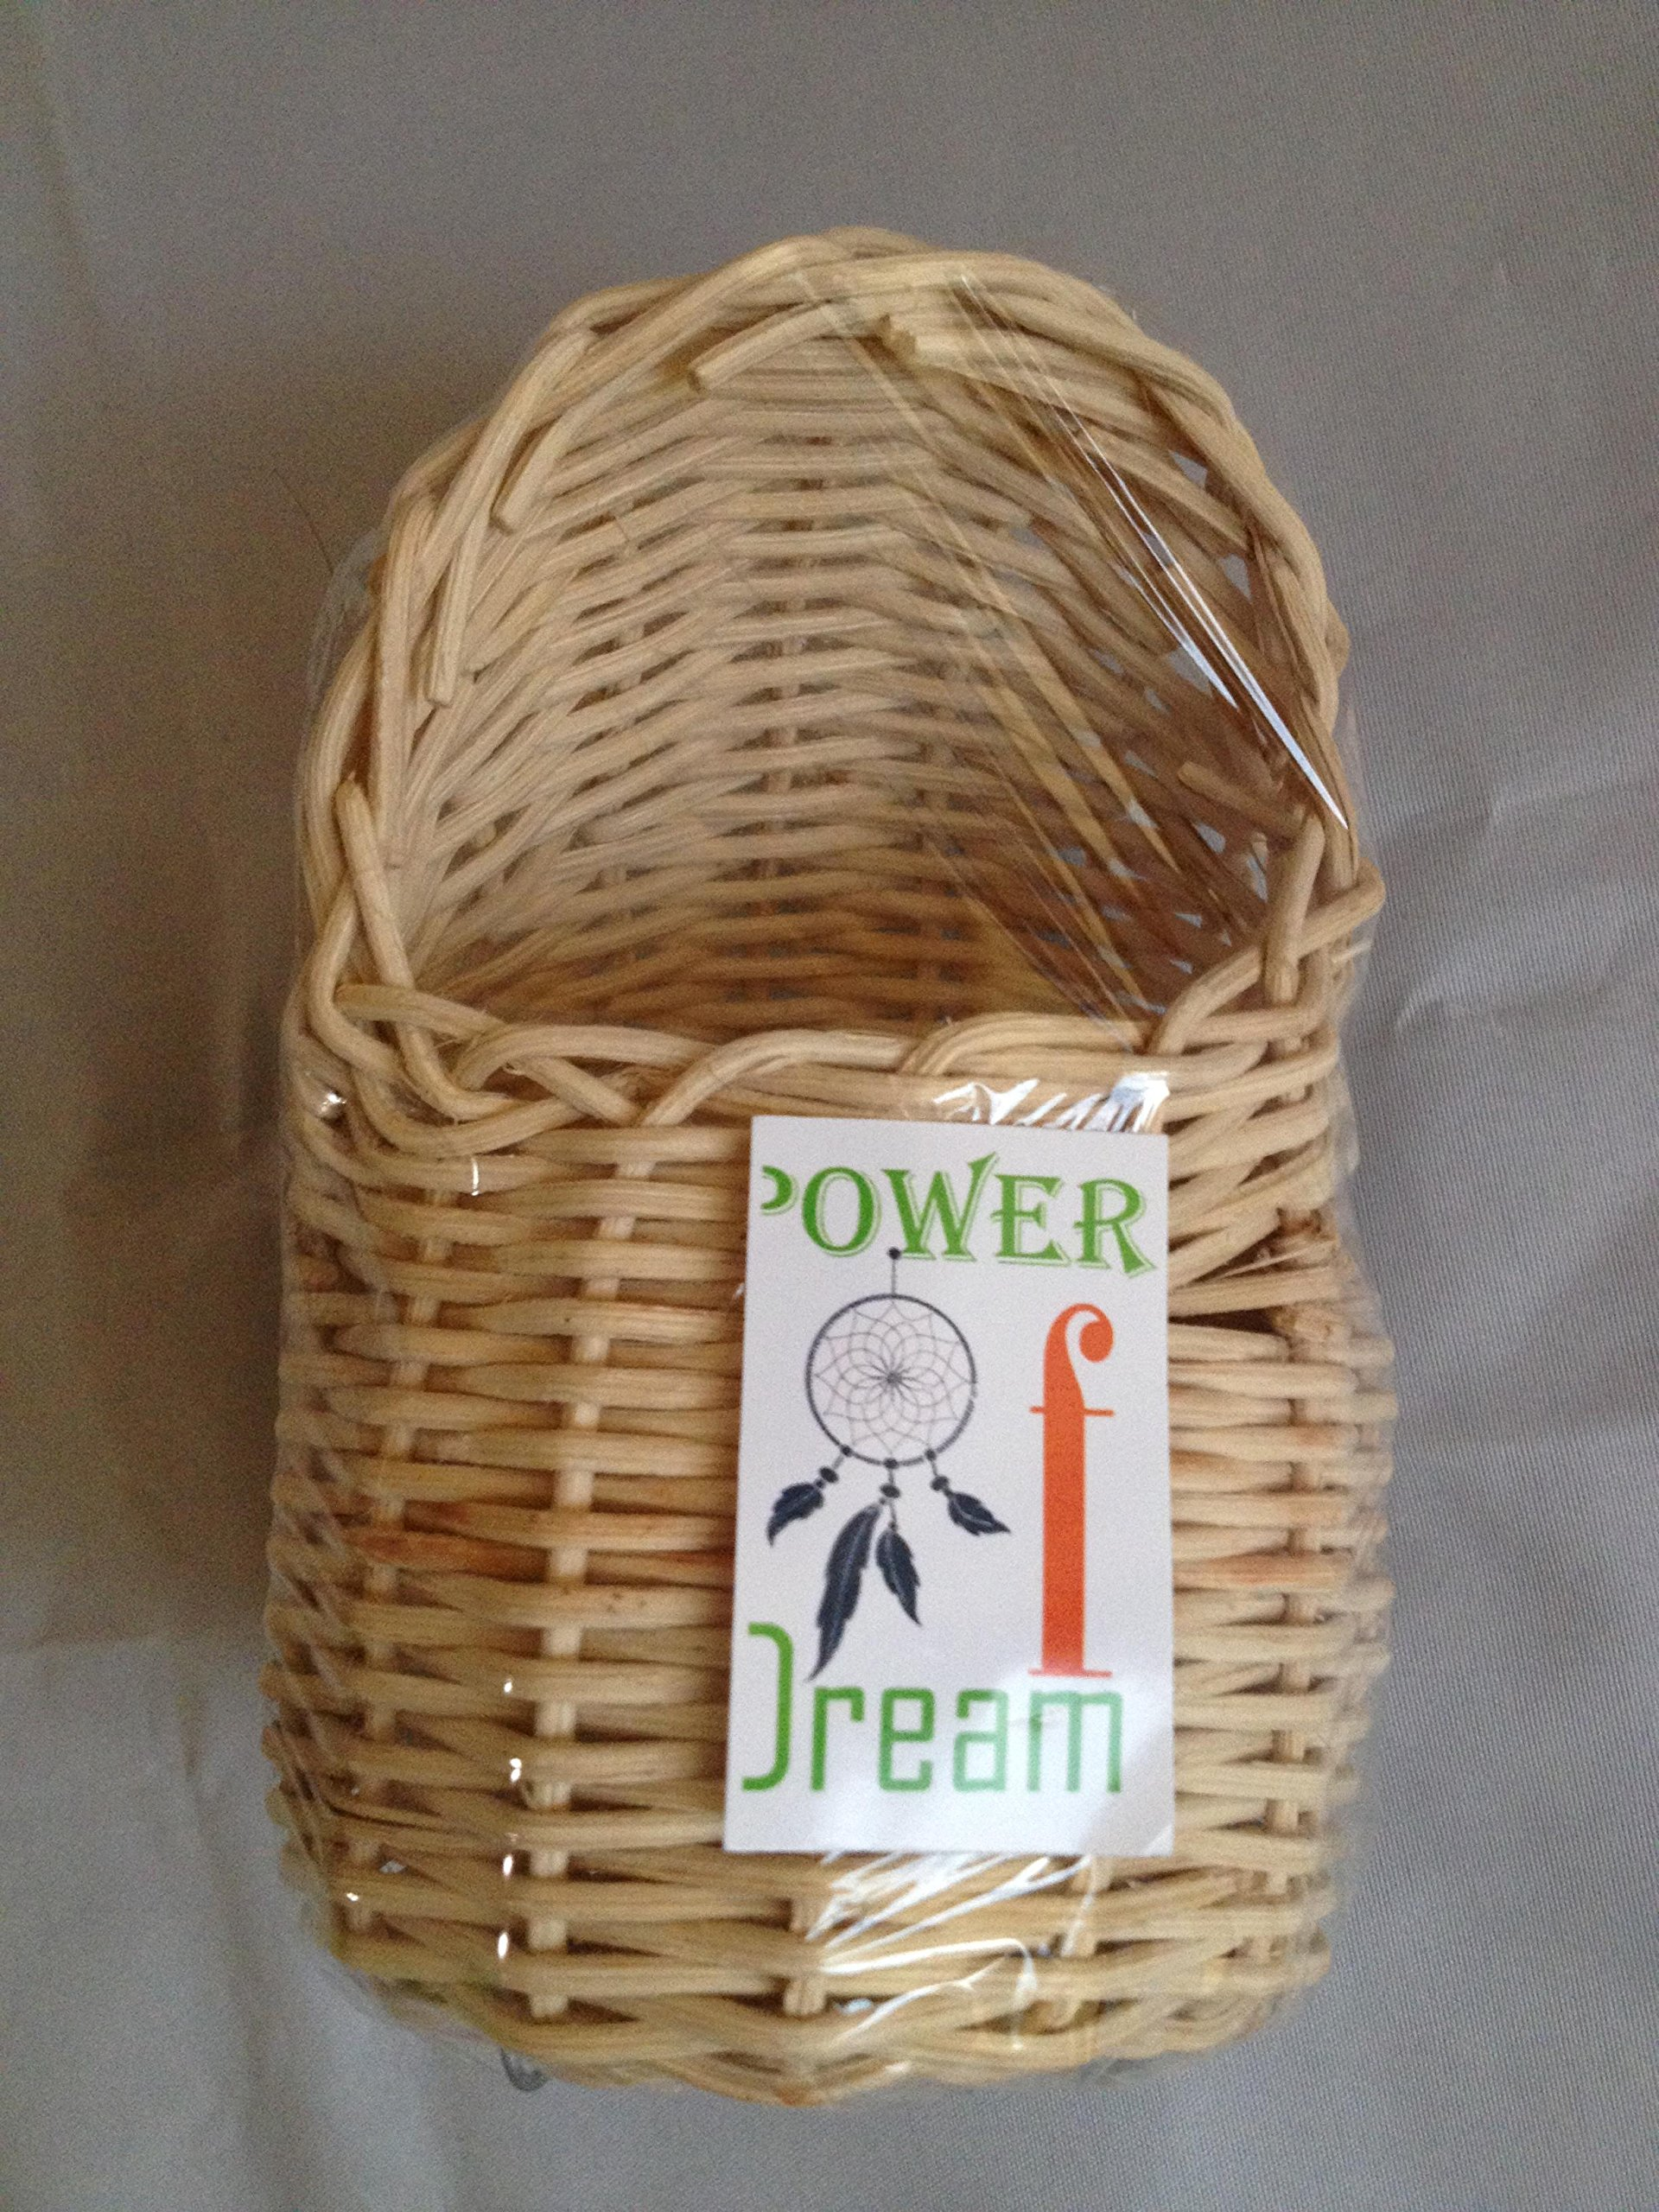 Handmade Rattan Nature's Nest Finch Birds 3x5 Inch by Power of Dream (Image #4)